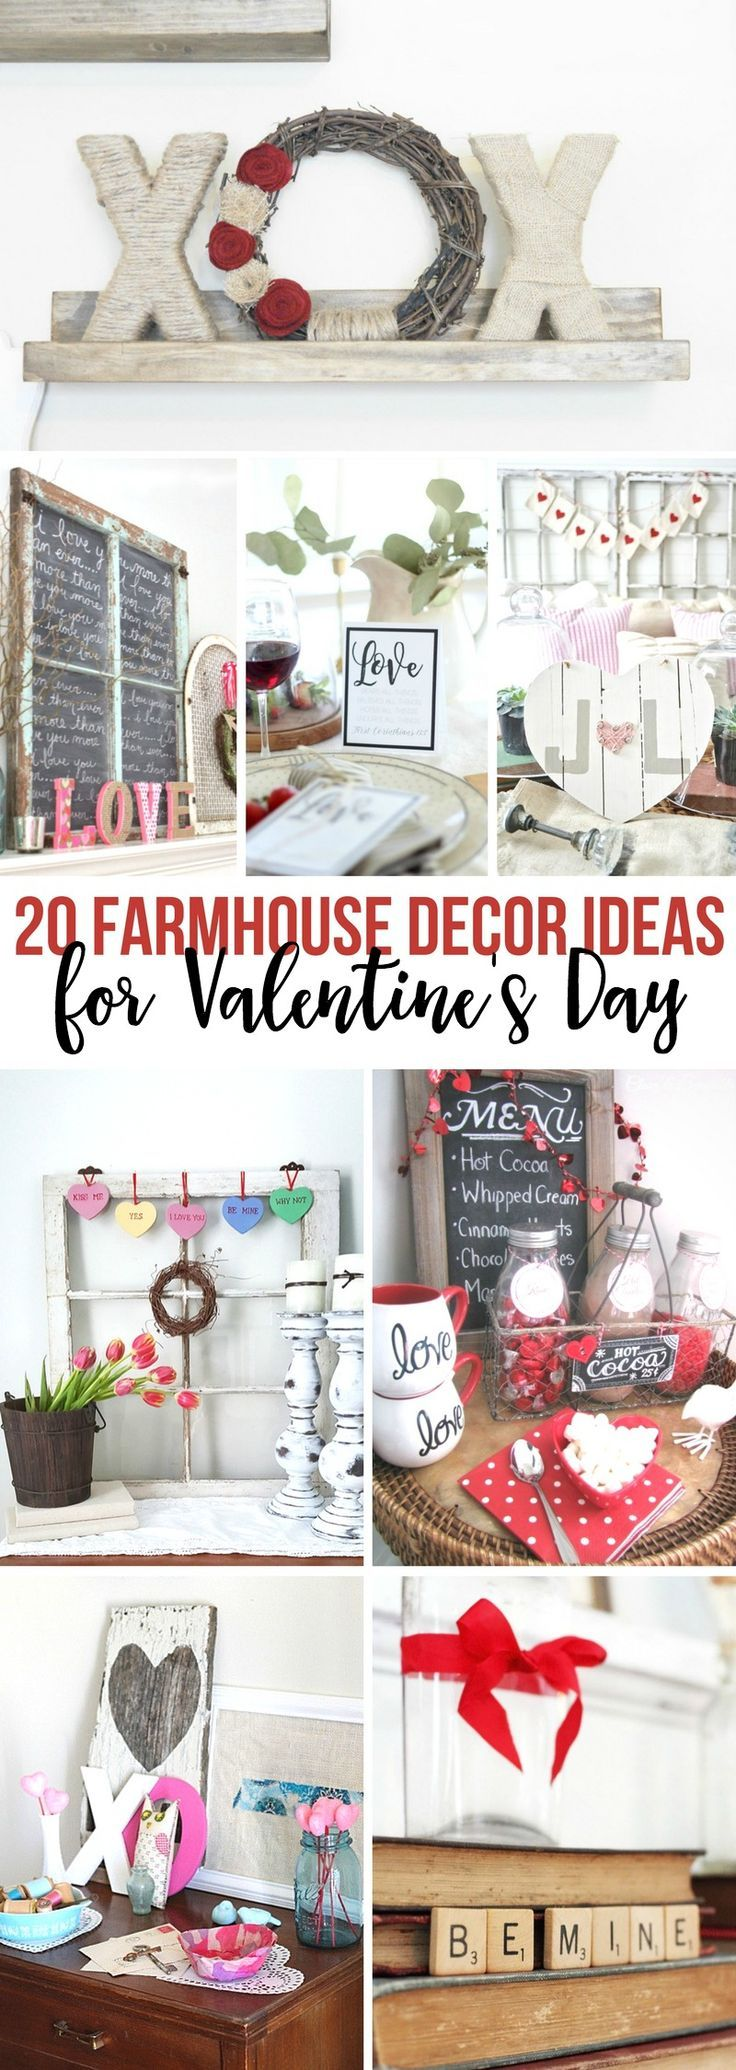 241 best Valentines Day Crafts, DIY & Decor Ideas images on ...